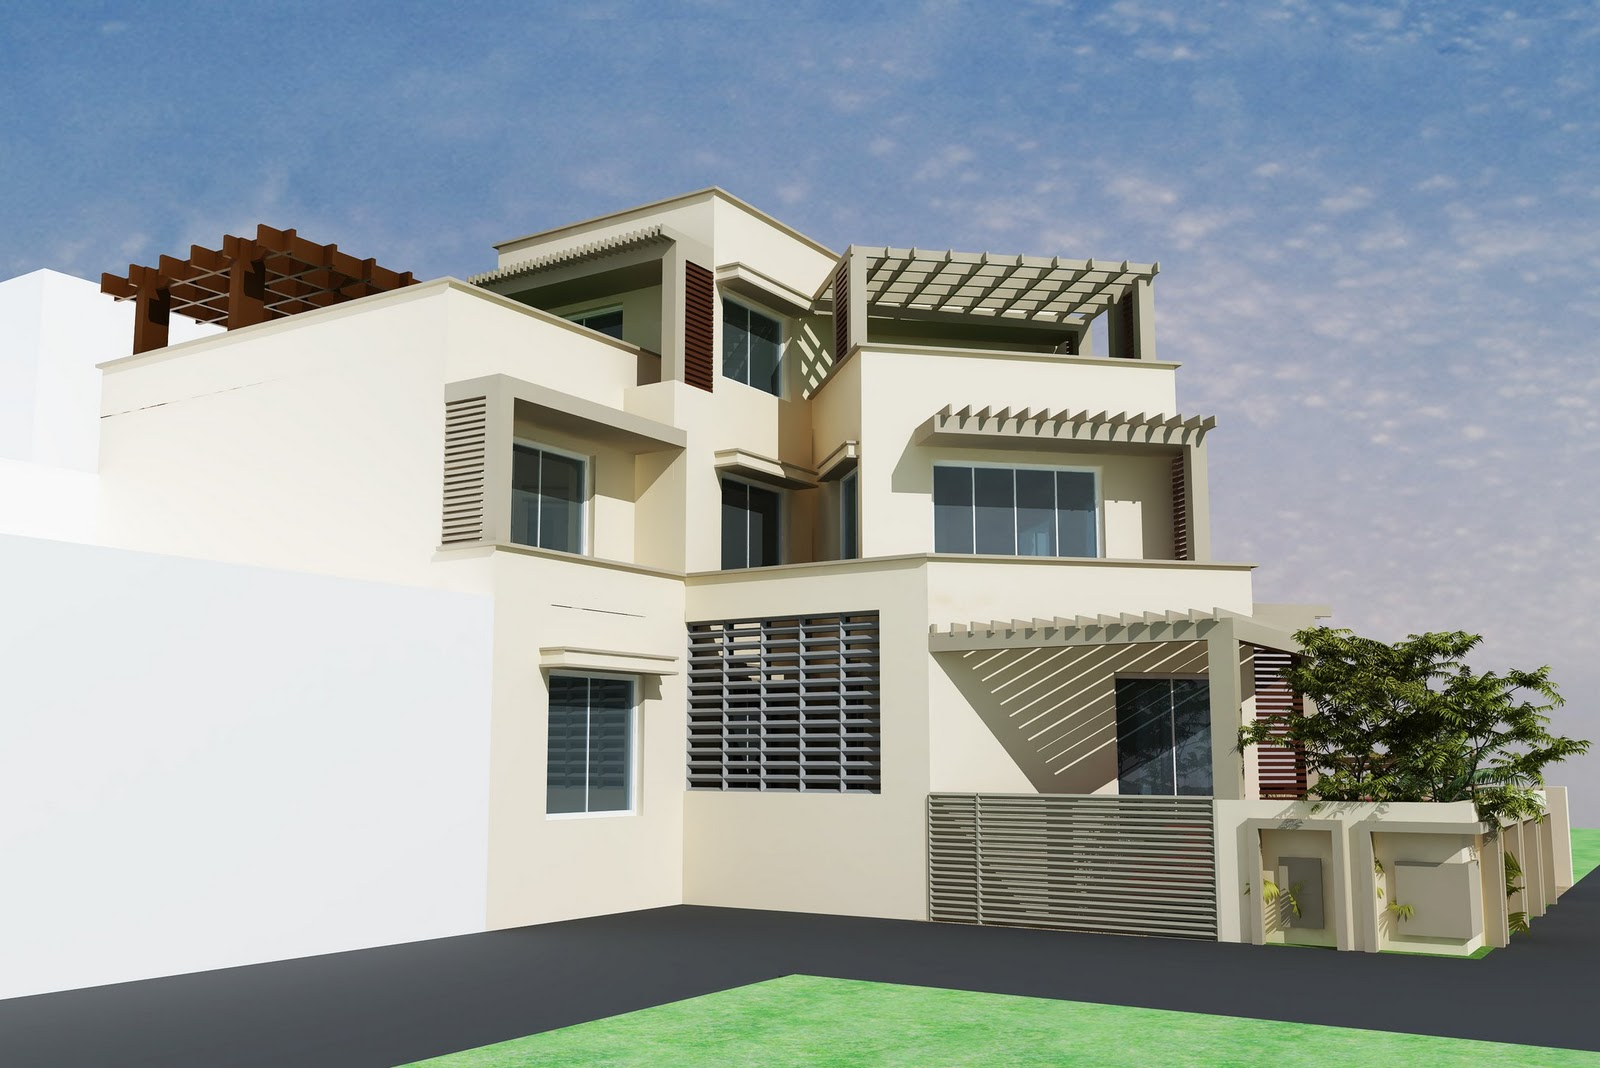 D Front Elevation Of House : D front elevation home design